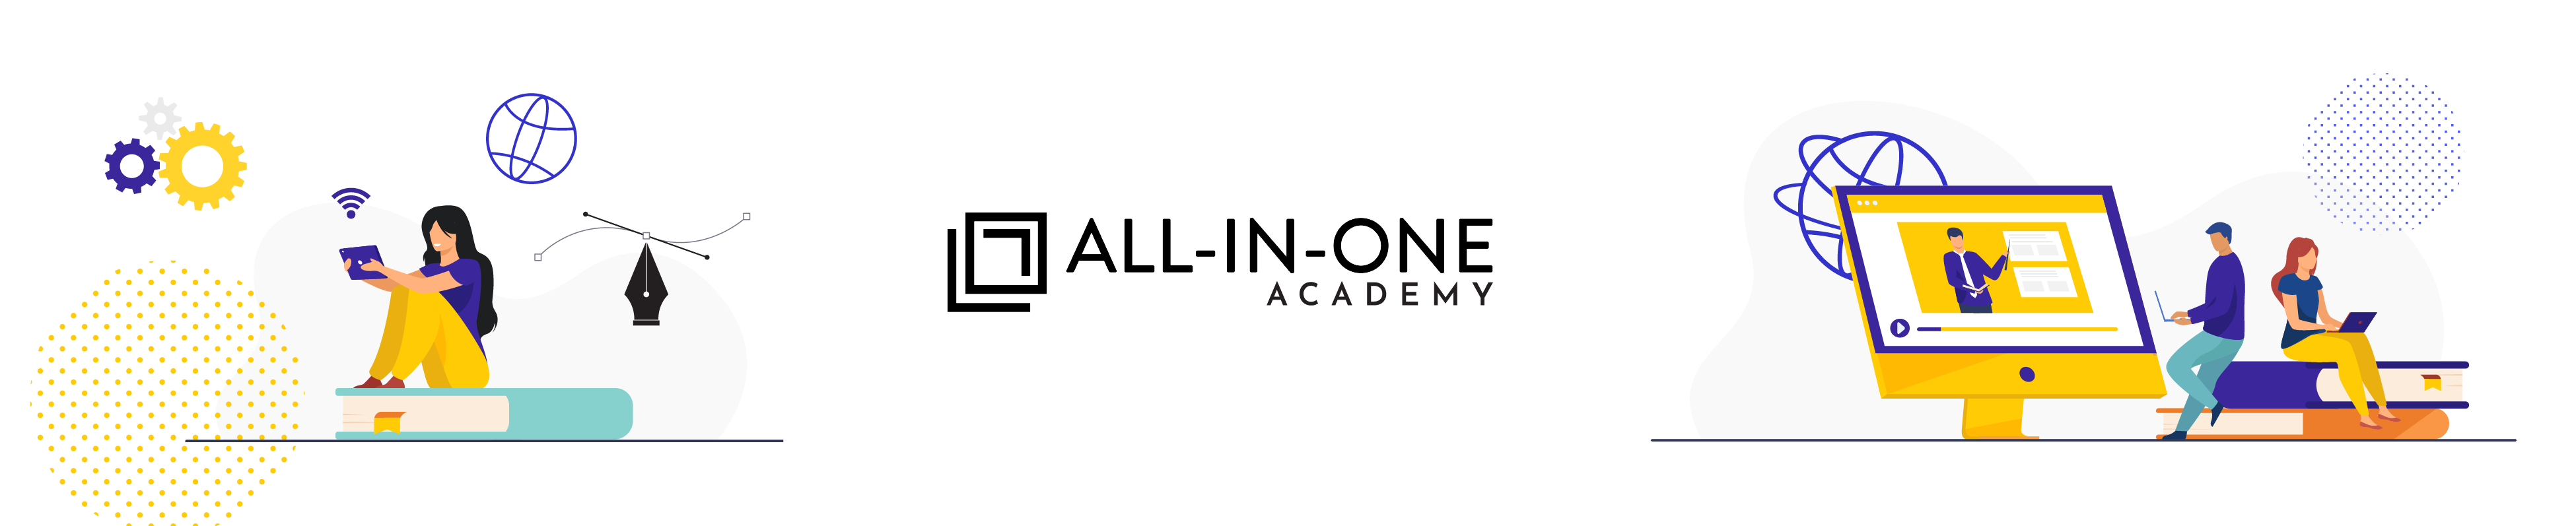 https://all-in-one-academy.com/wp-content/uploads/2021/09/1187821_AIOAcademy-SM-Title-Image_Academy-linkedin_092121-e1632465137299.png